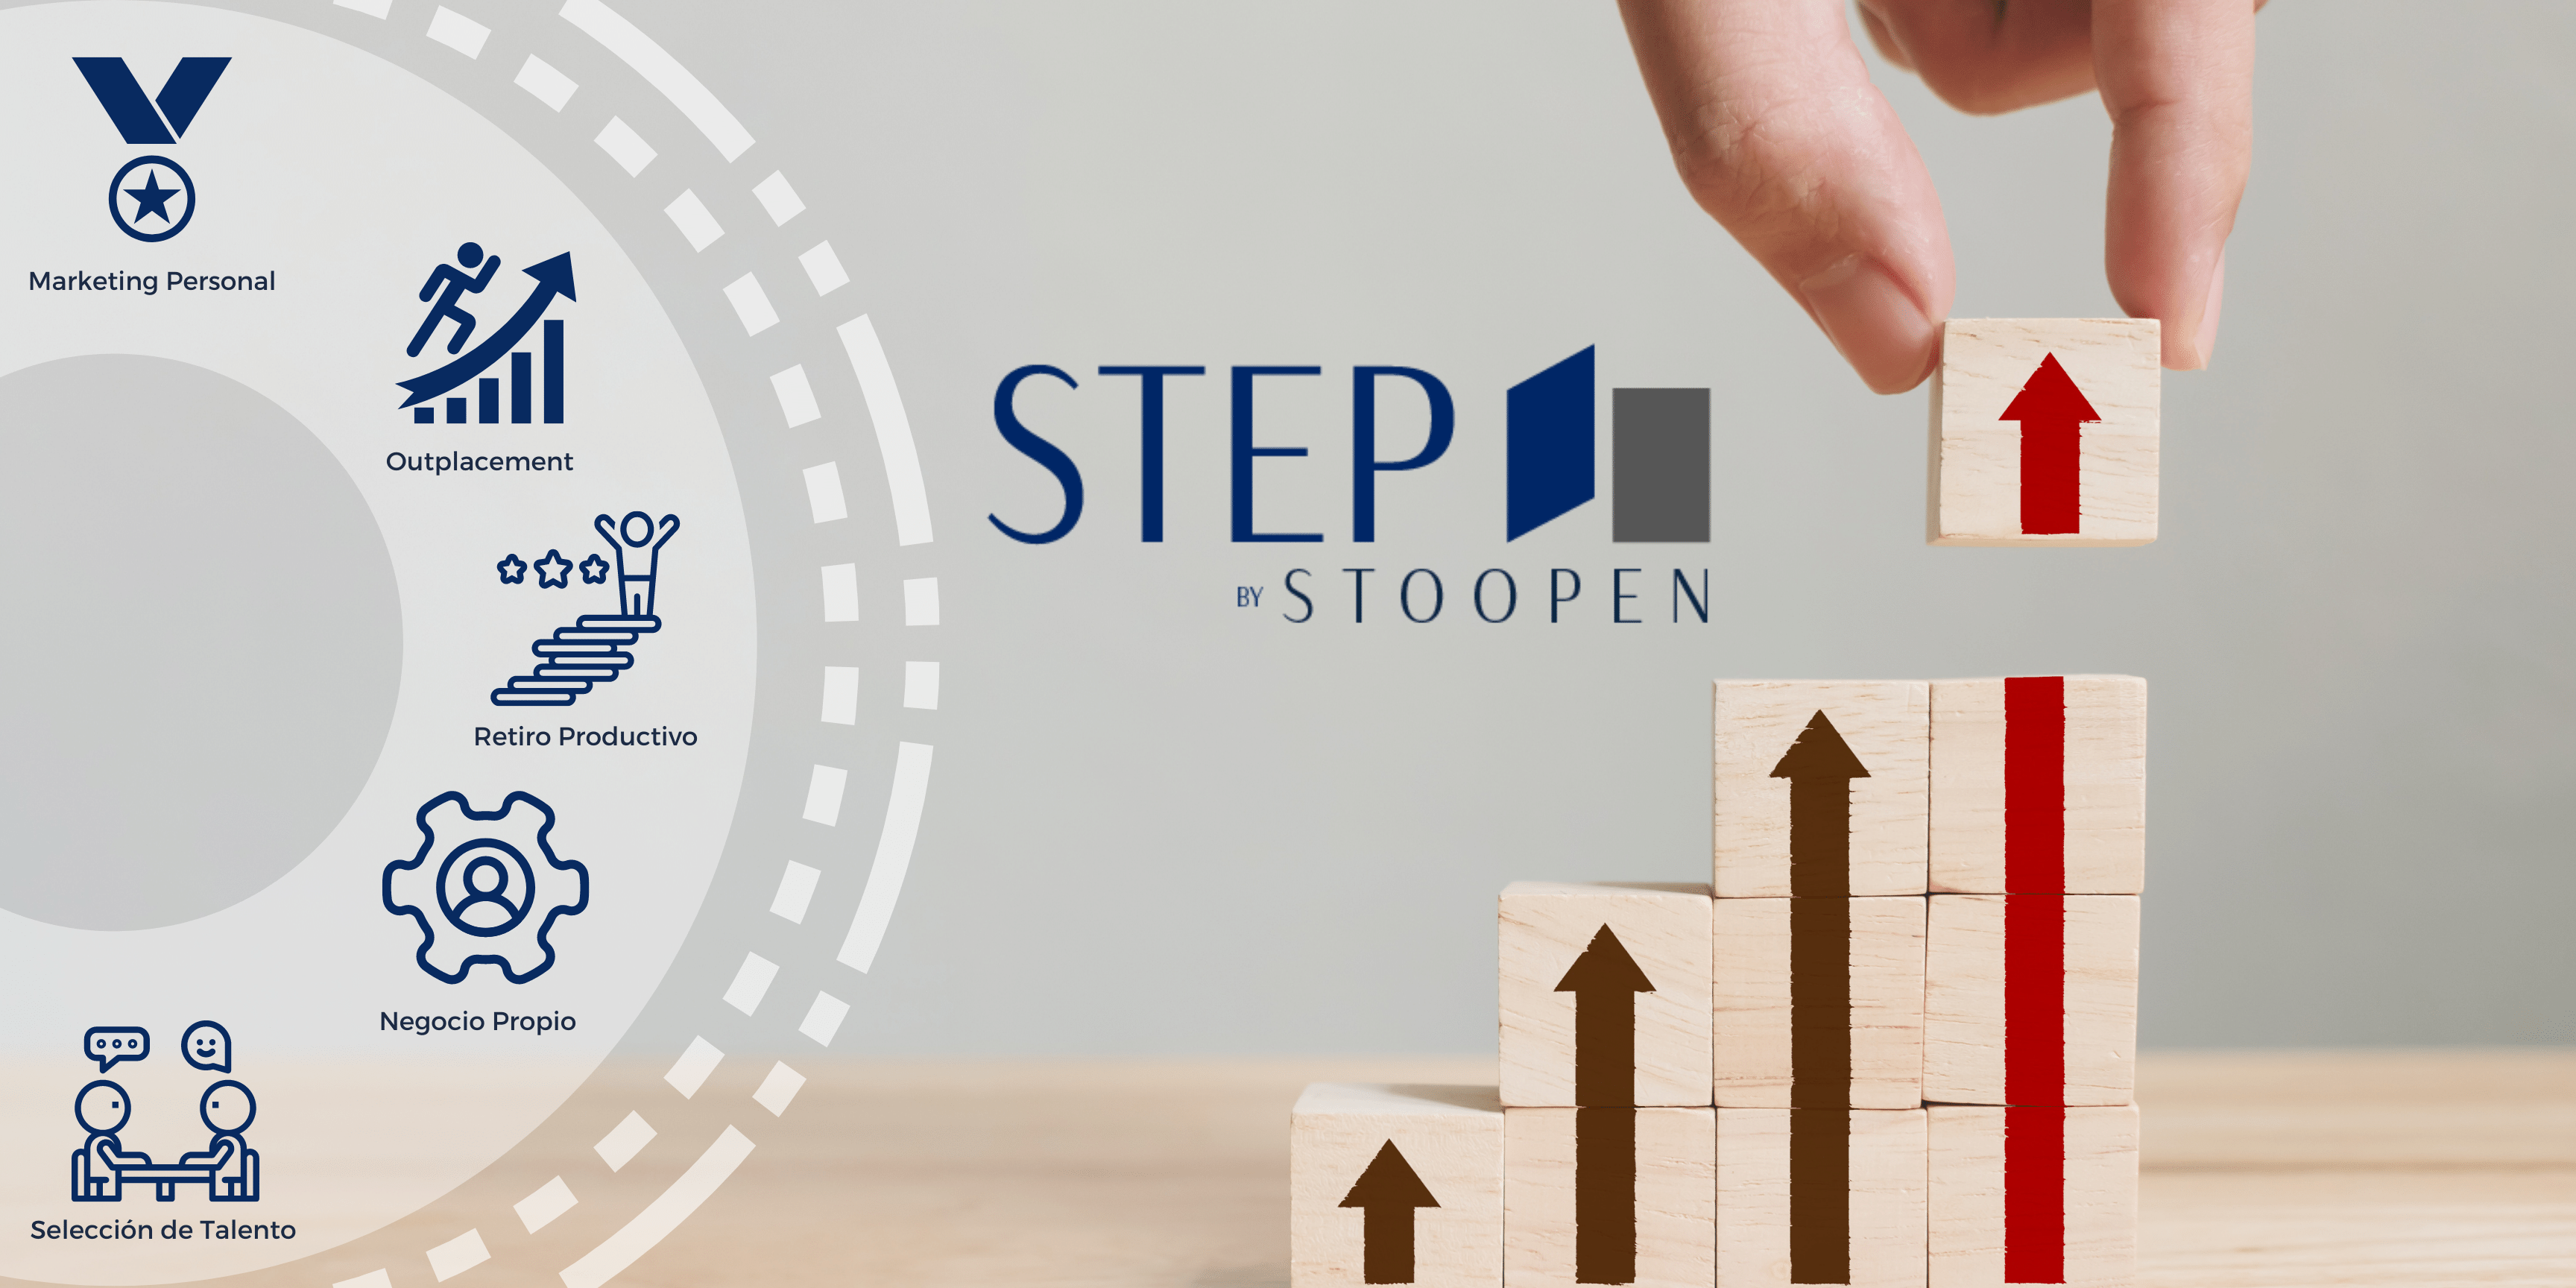 Step by Stoopen